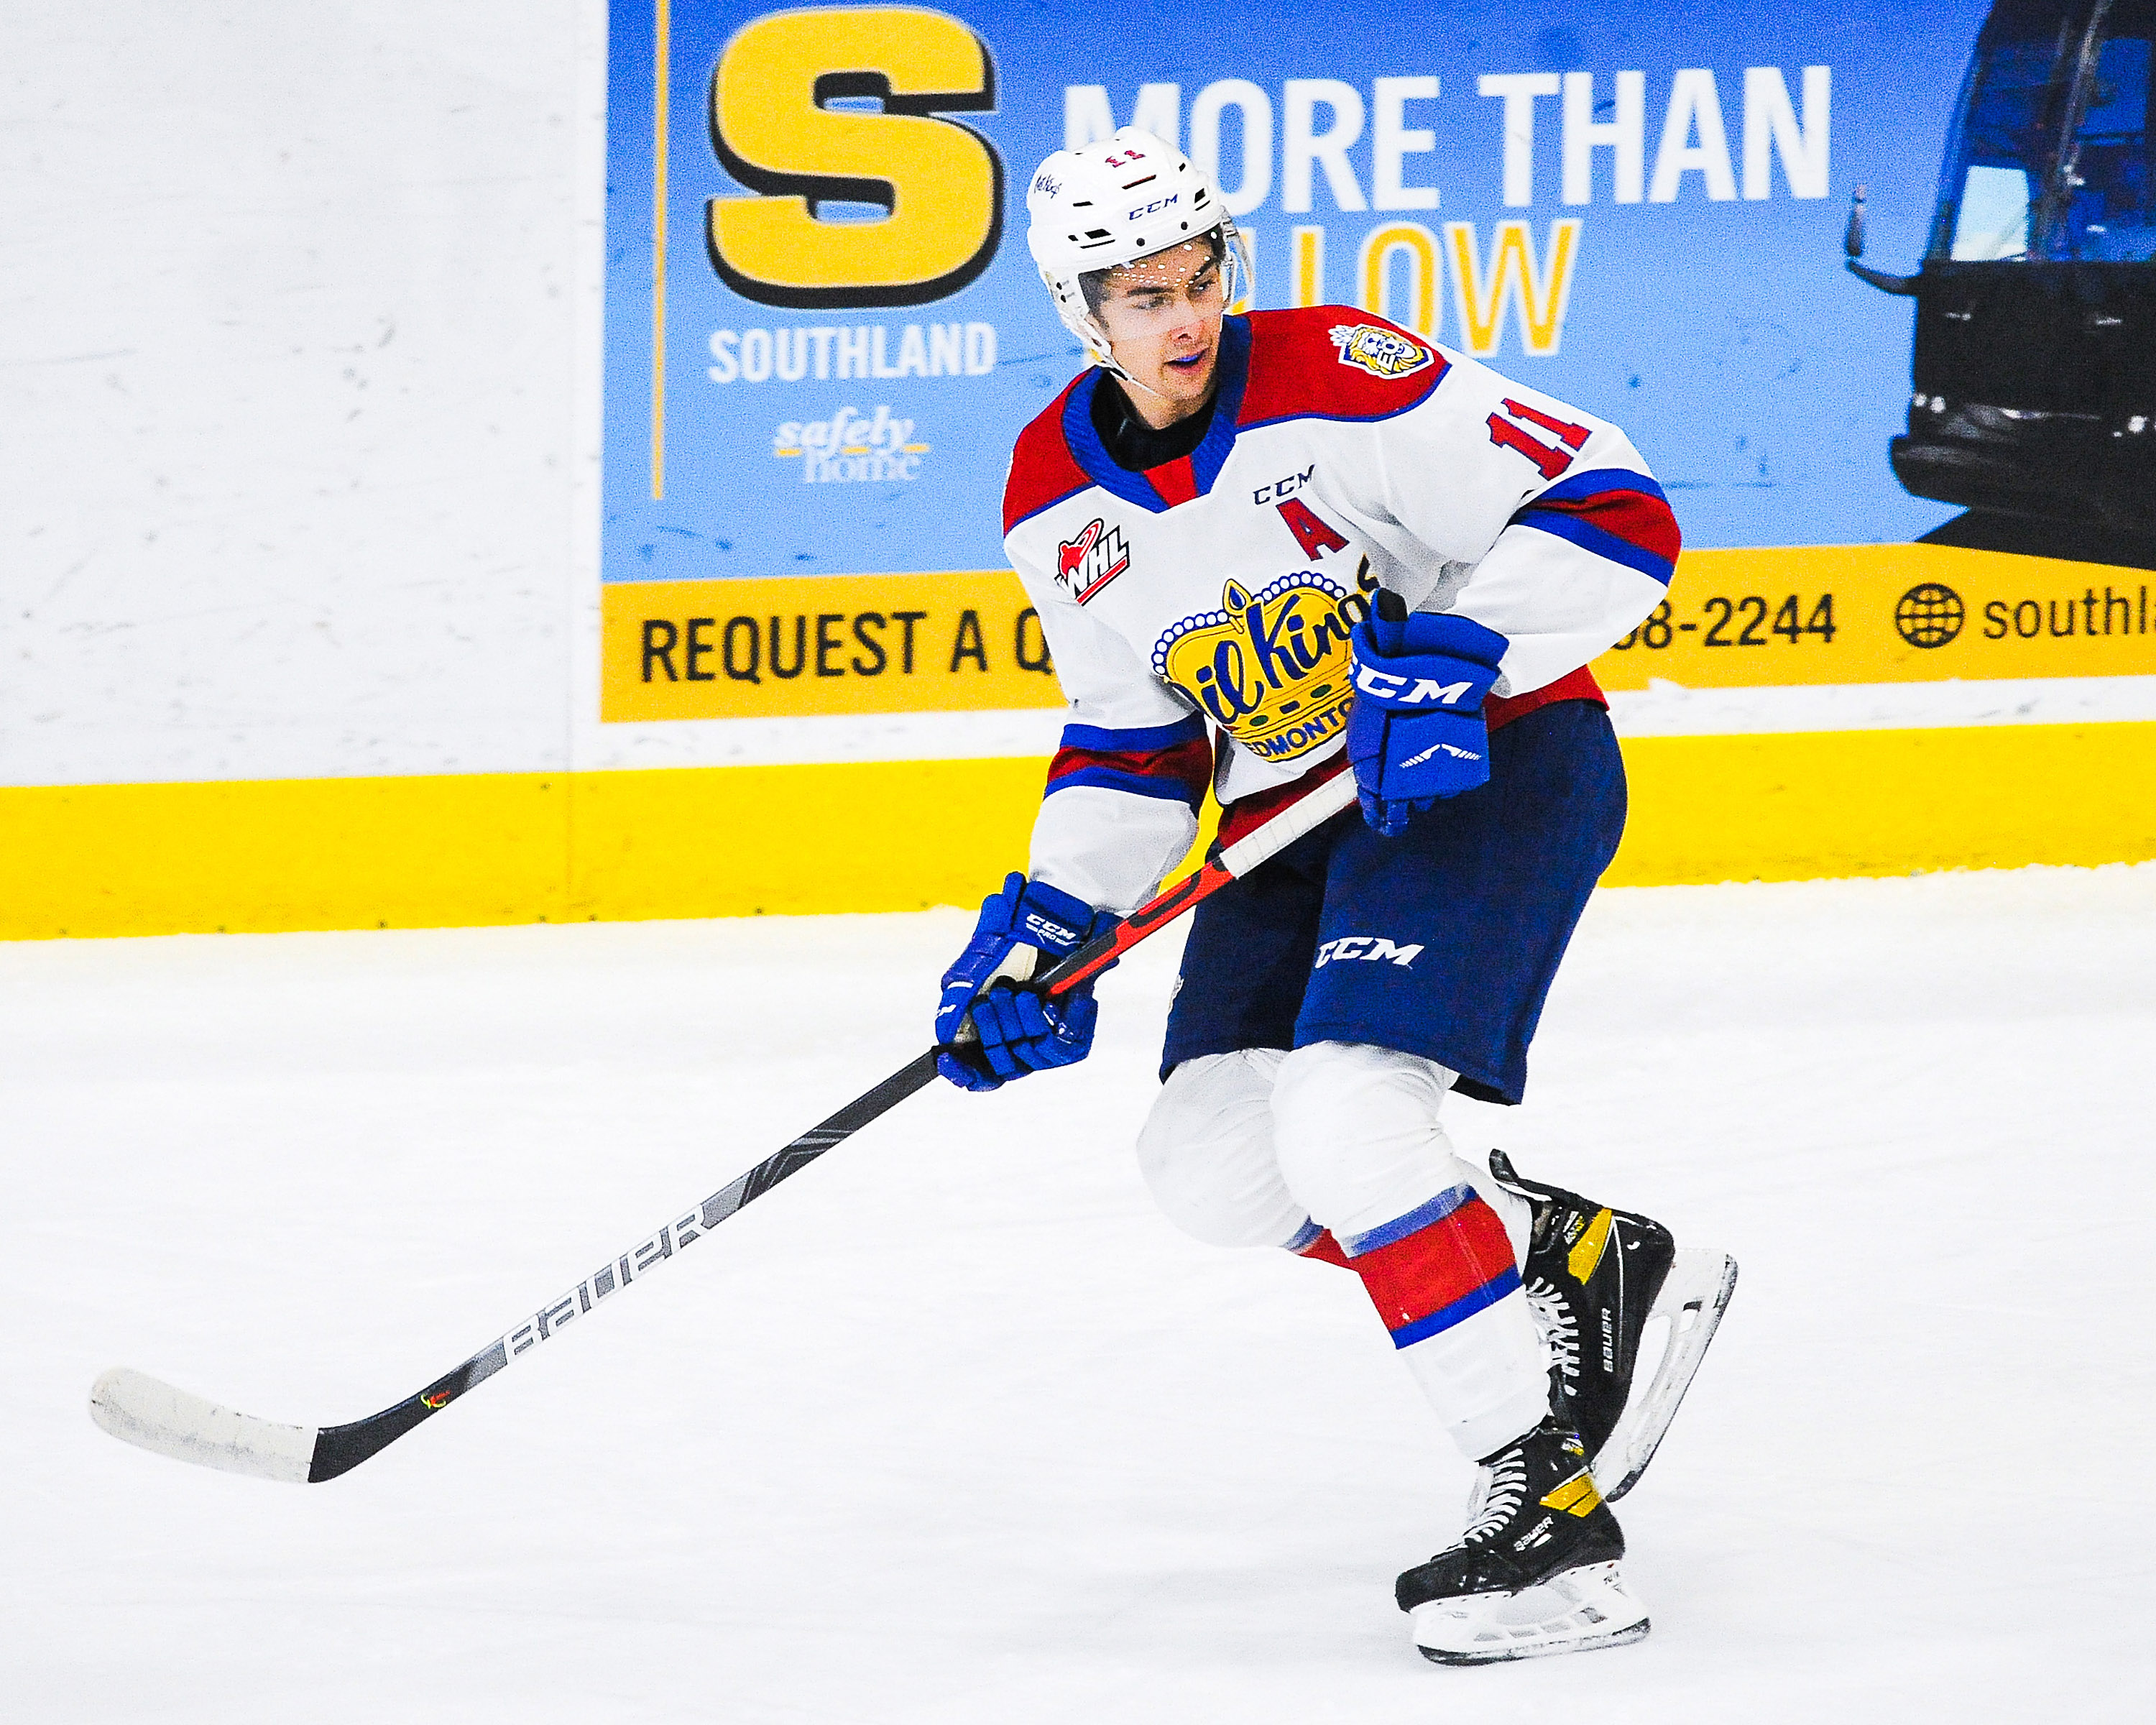 Dylan Guenther #11 of the Edmonton Oil Kings in action against the Calgary Hitmen during a WHL game at Seven Chiefs Sportsplex on March 27, 2021 in Calgary, Alberta, Canada.